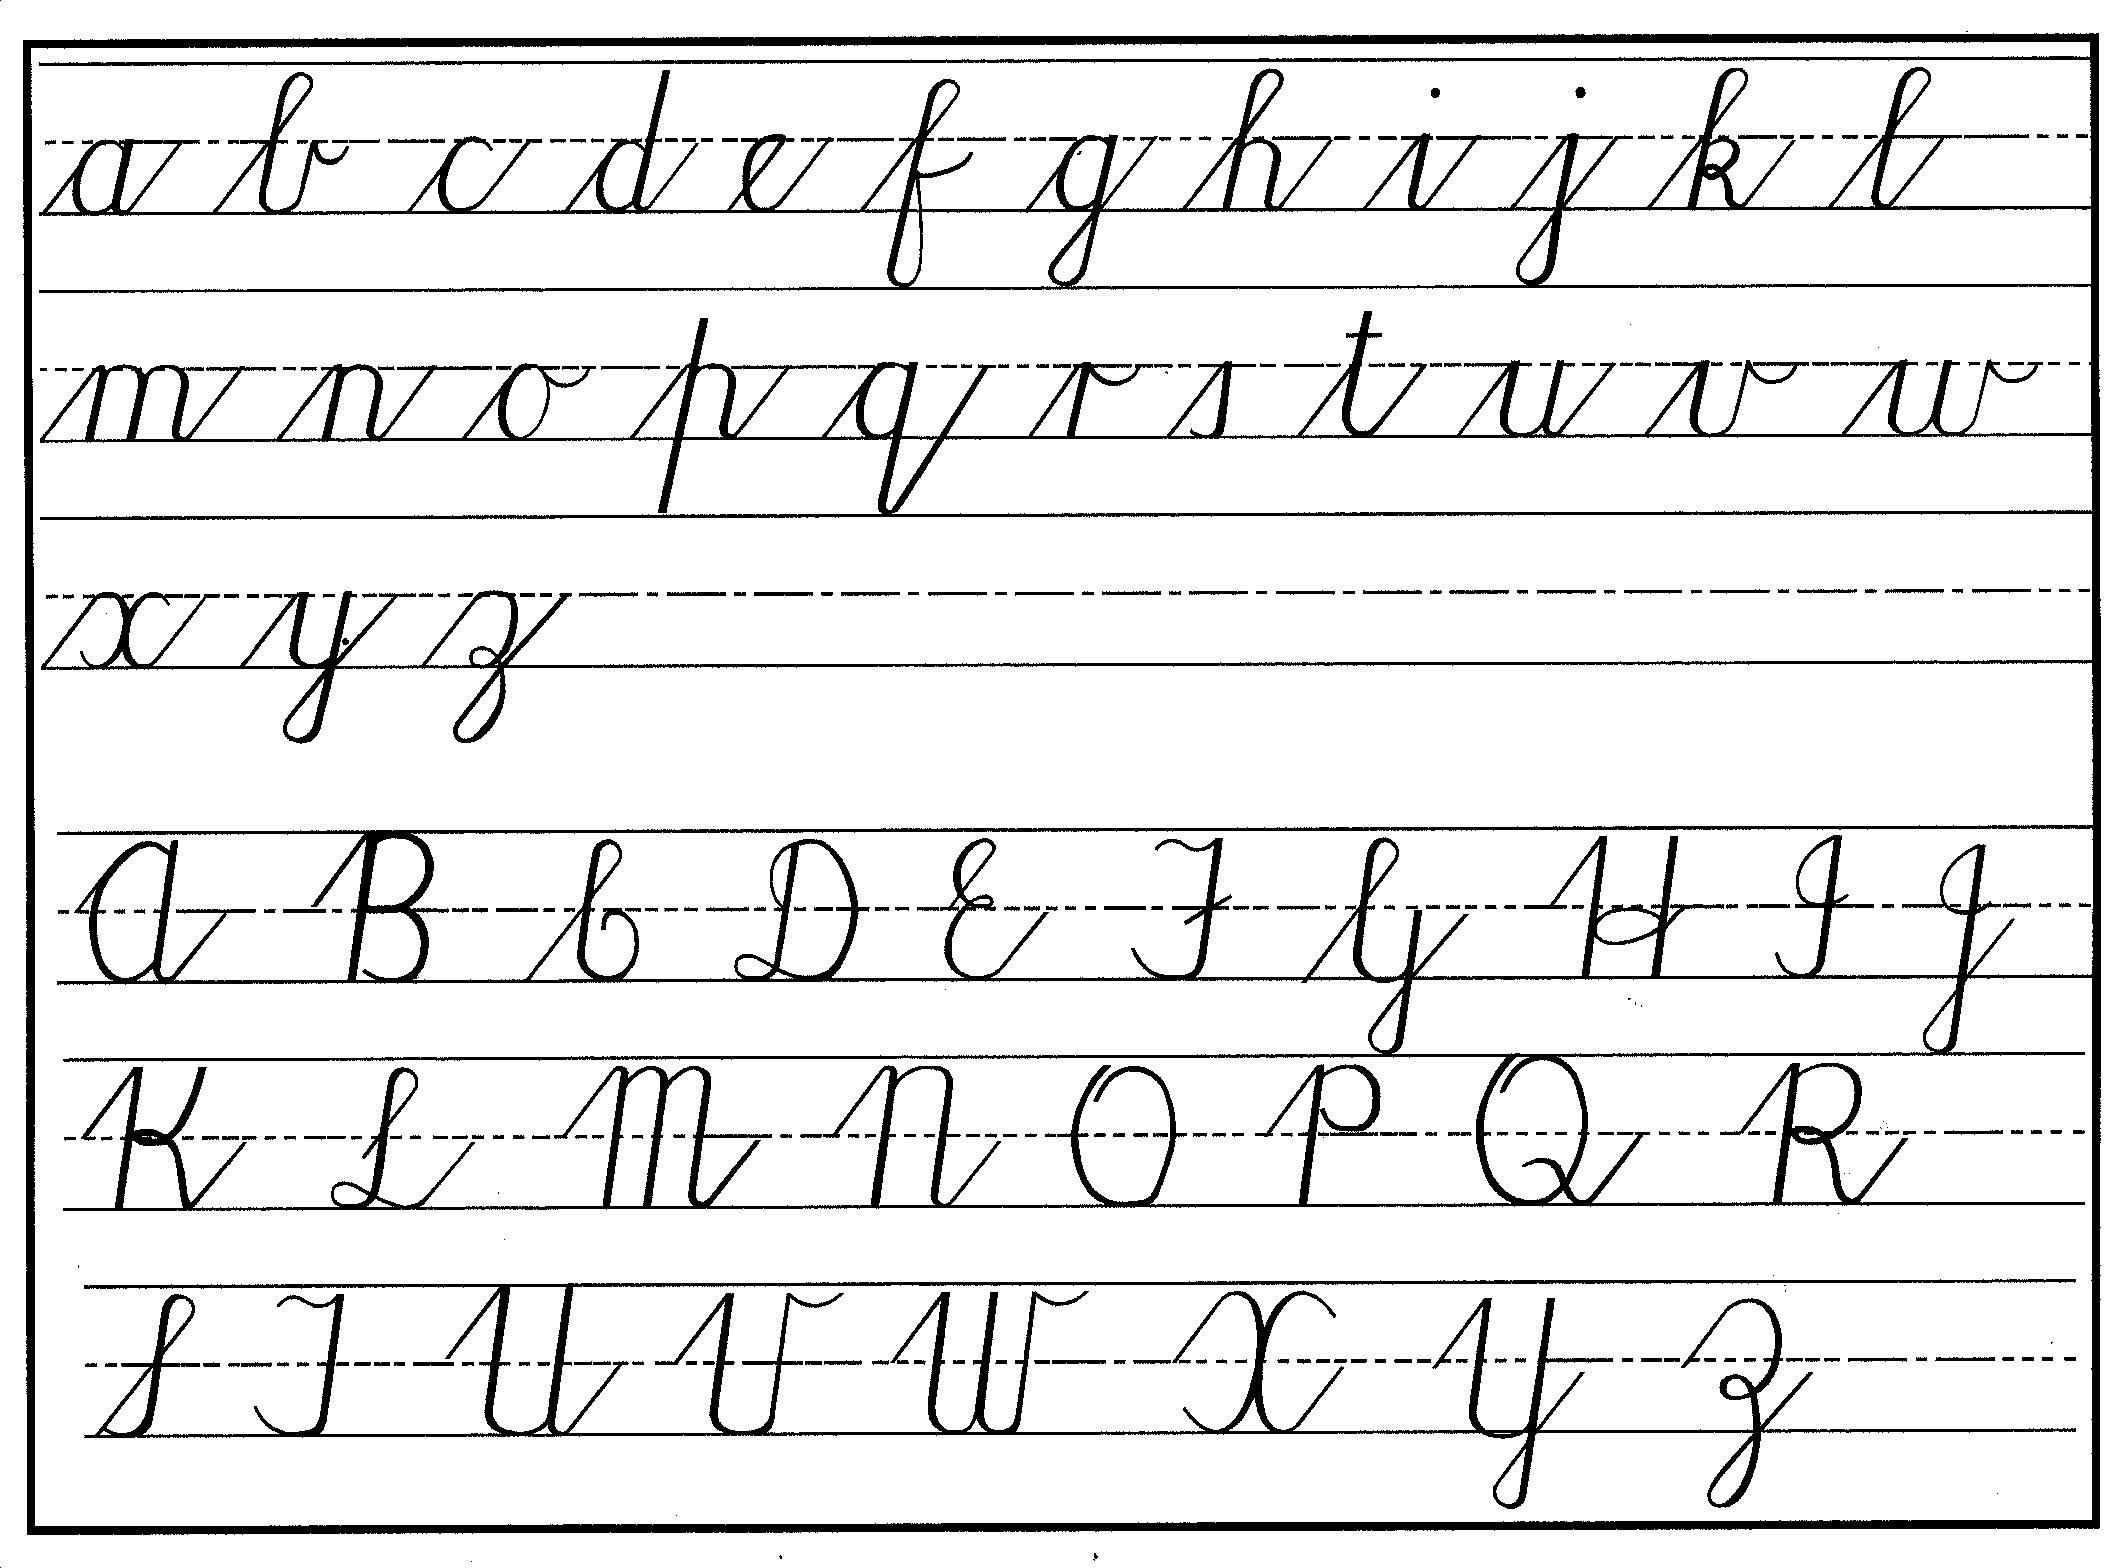 Worksheet Cursive Writing In Schools lawmakers order schools to teach cursive writing bill goes governor